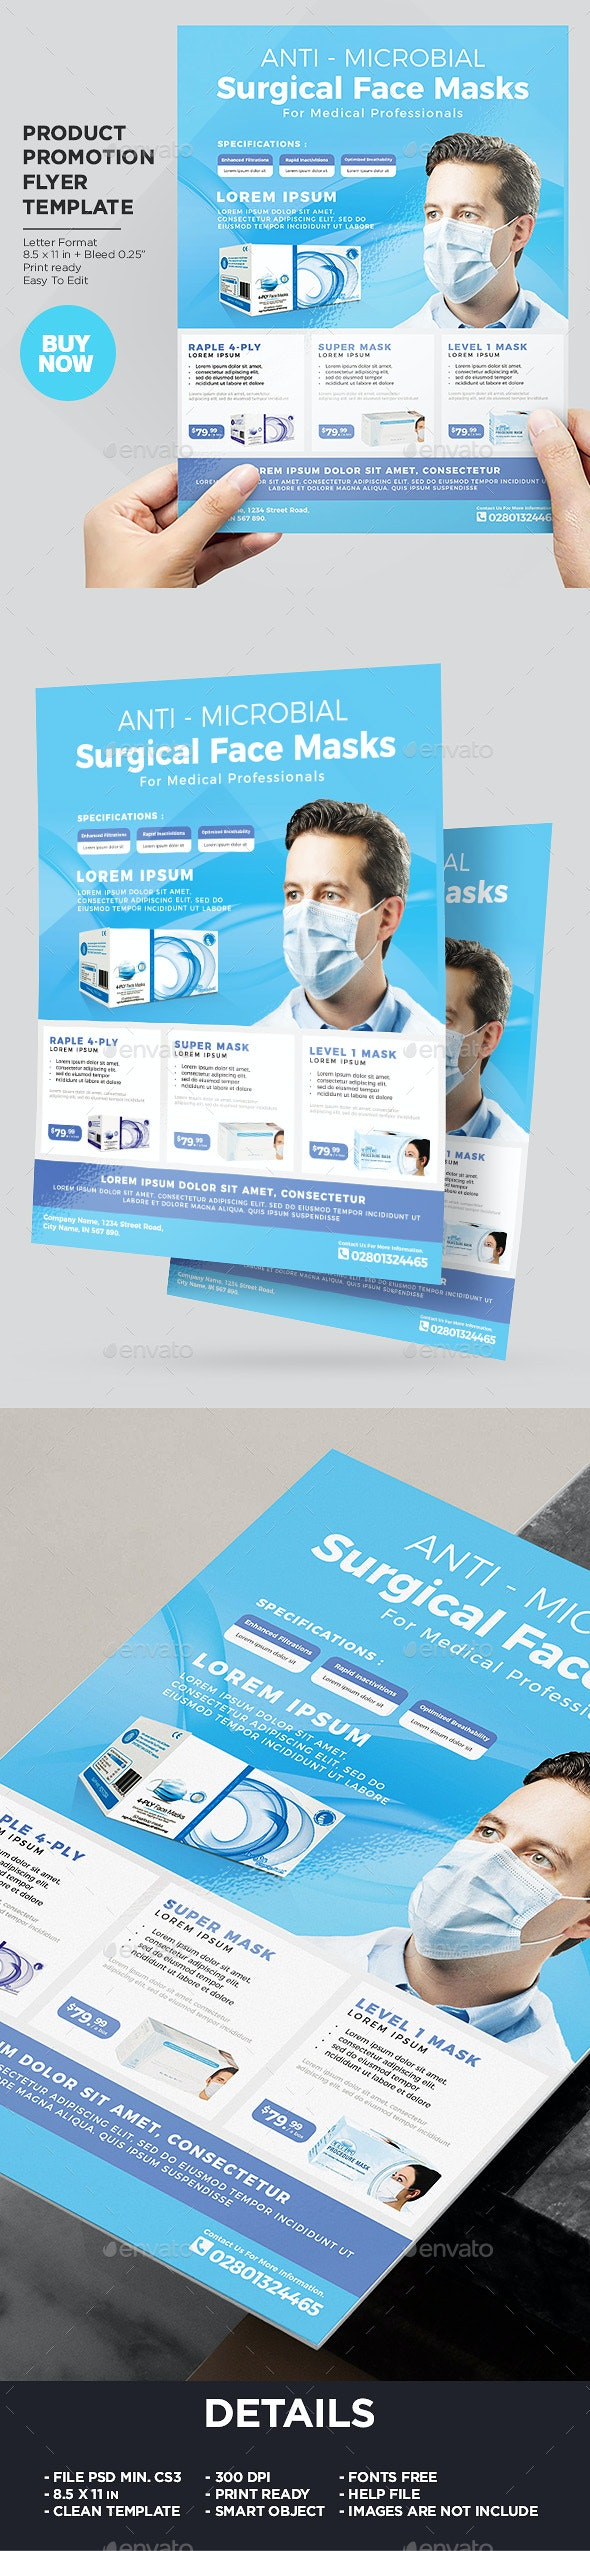 Product Flyer Template - Medical Disposable Face Masks / Surgical Masks - Corporate Flyers